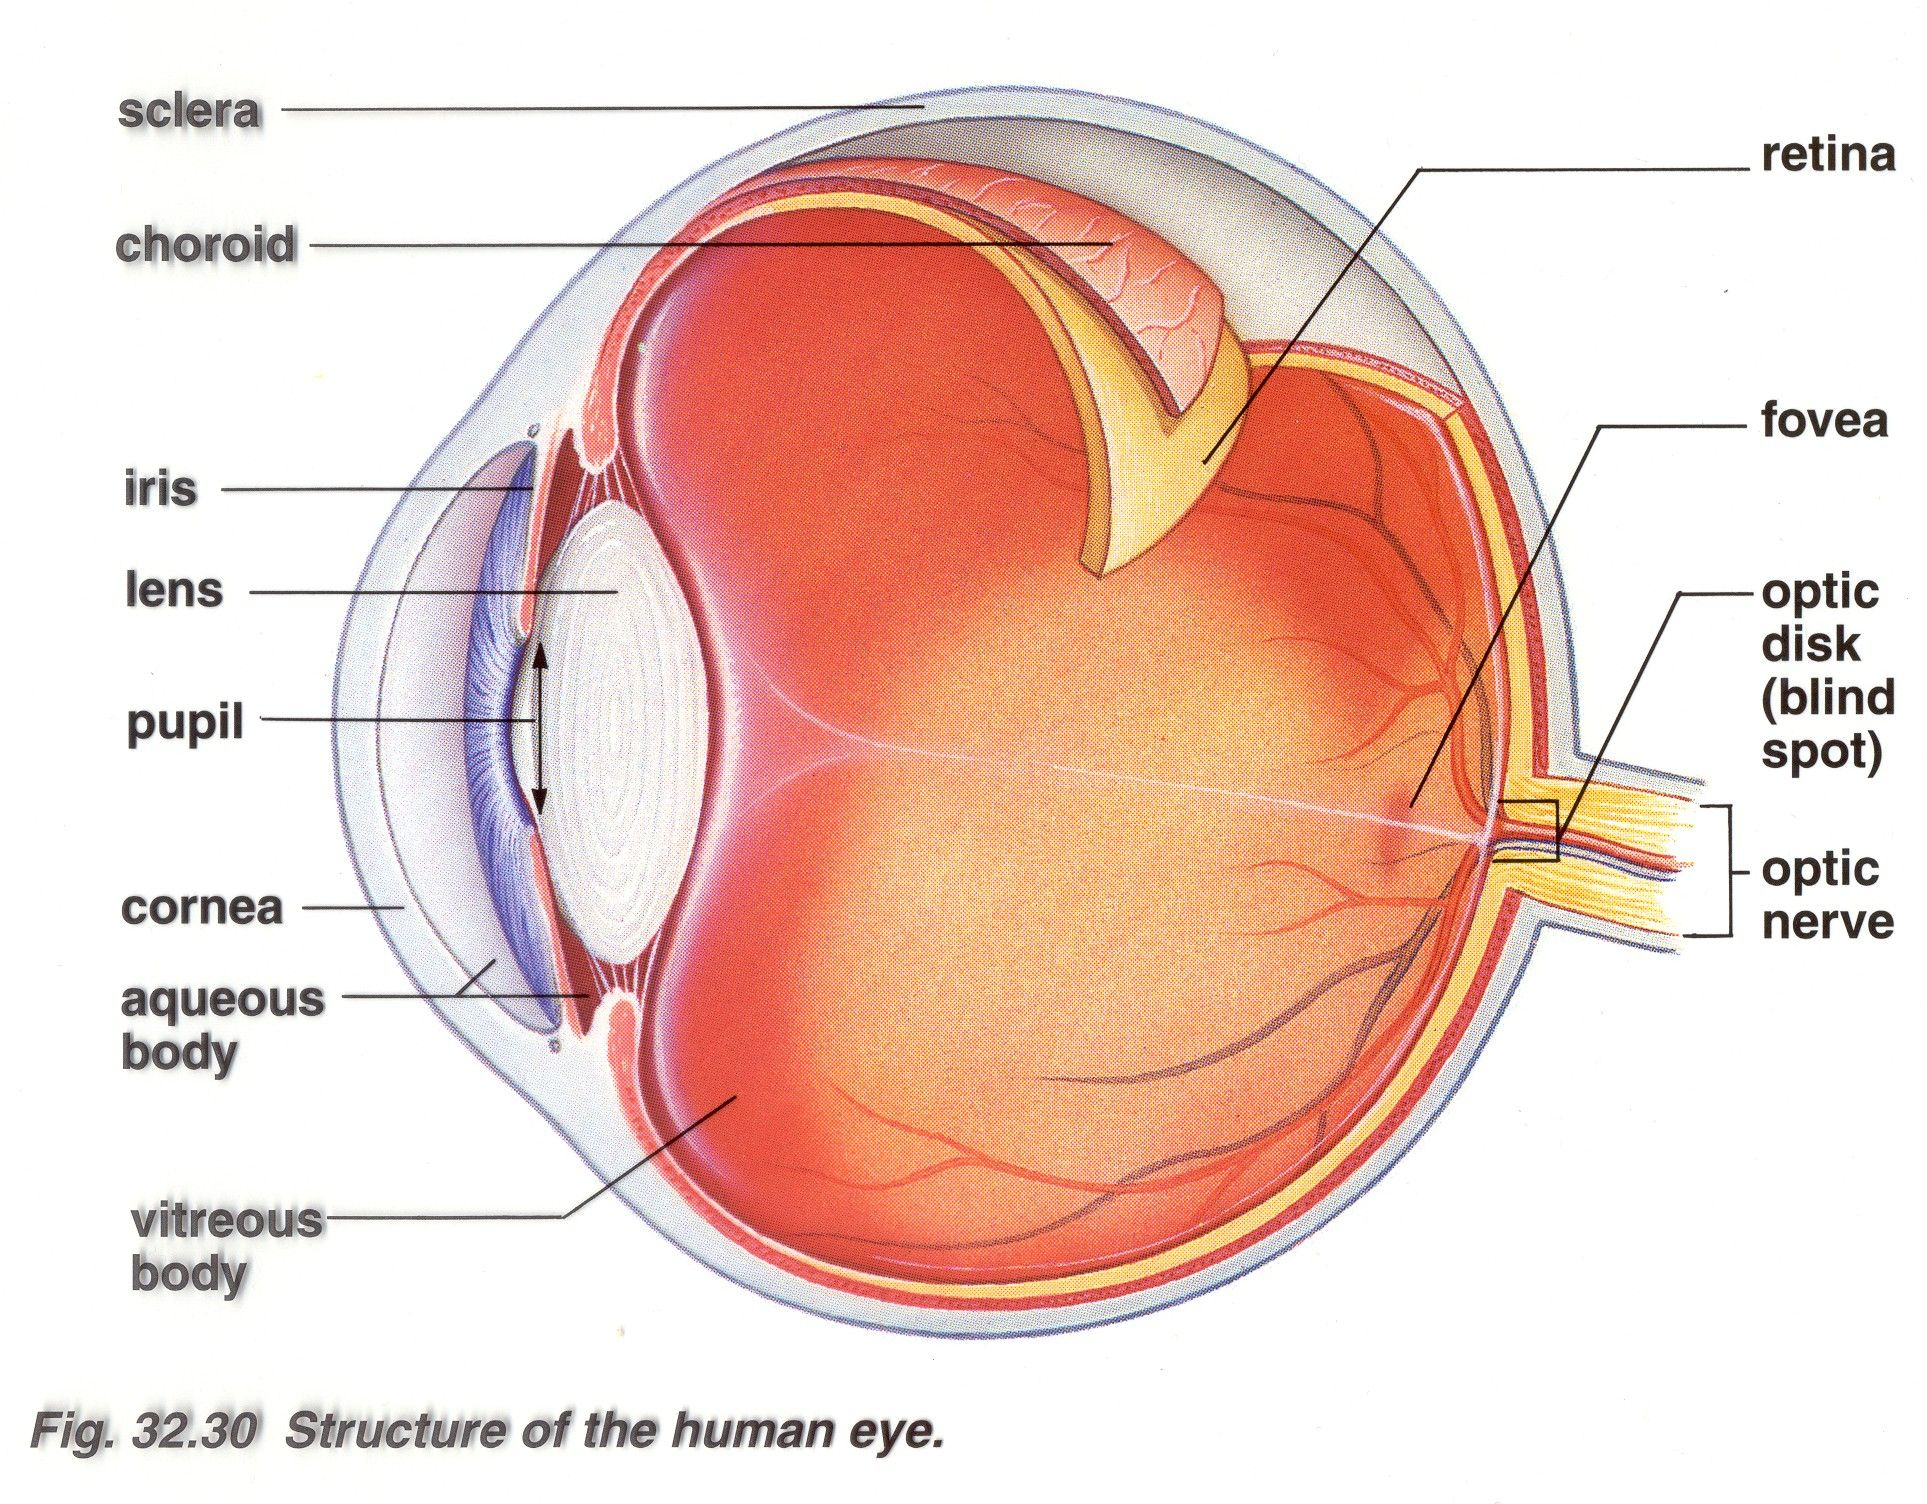 eyeball diagram structures of the human eye cool eh